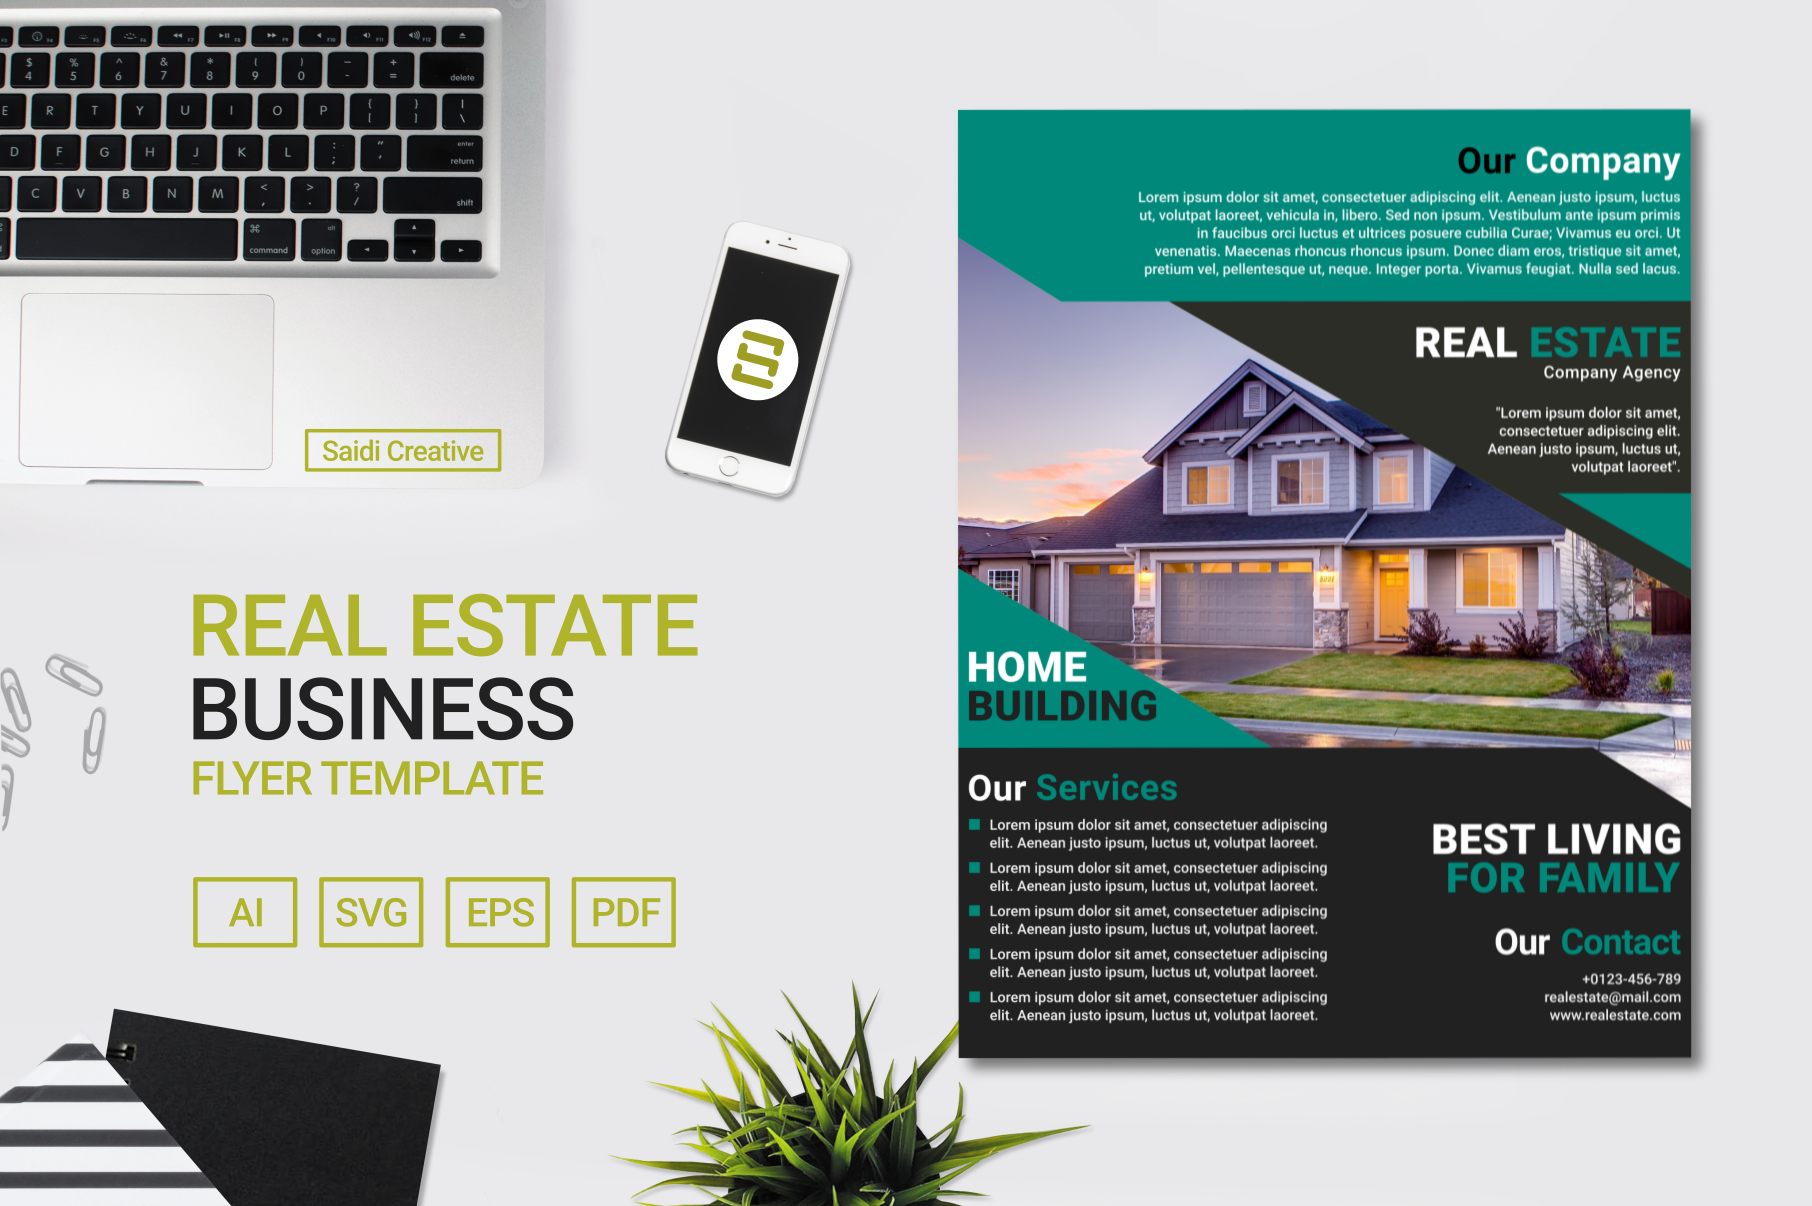 Download Free Real Estate Business Flyer Template Design With Teal Black Color for Cricut Explore, Silhouette and other cutting machines.